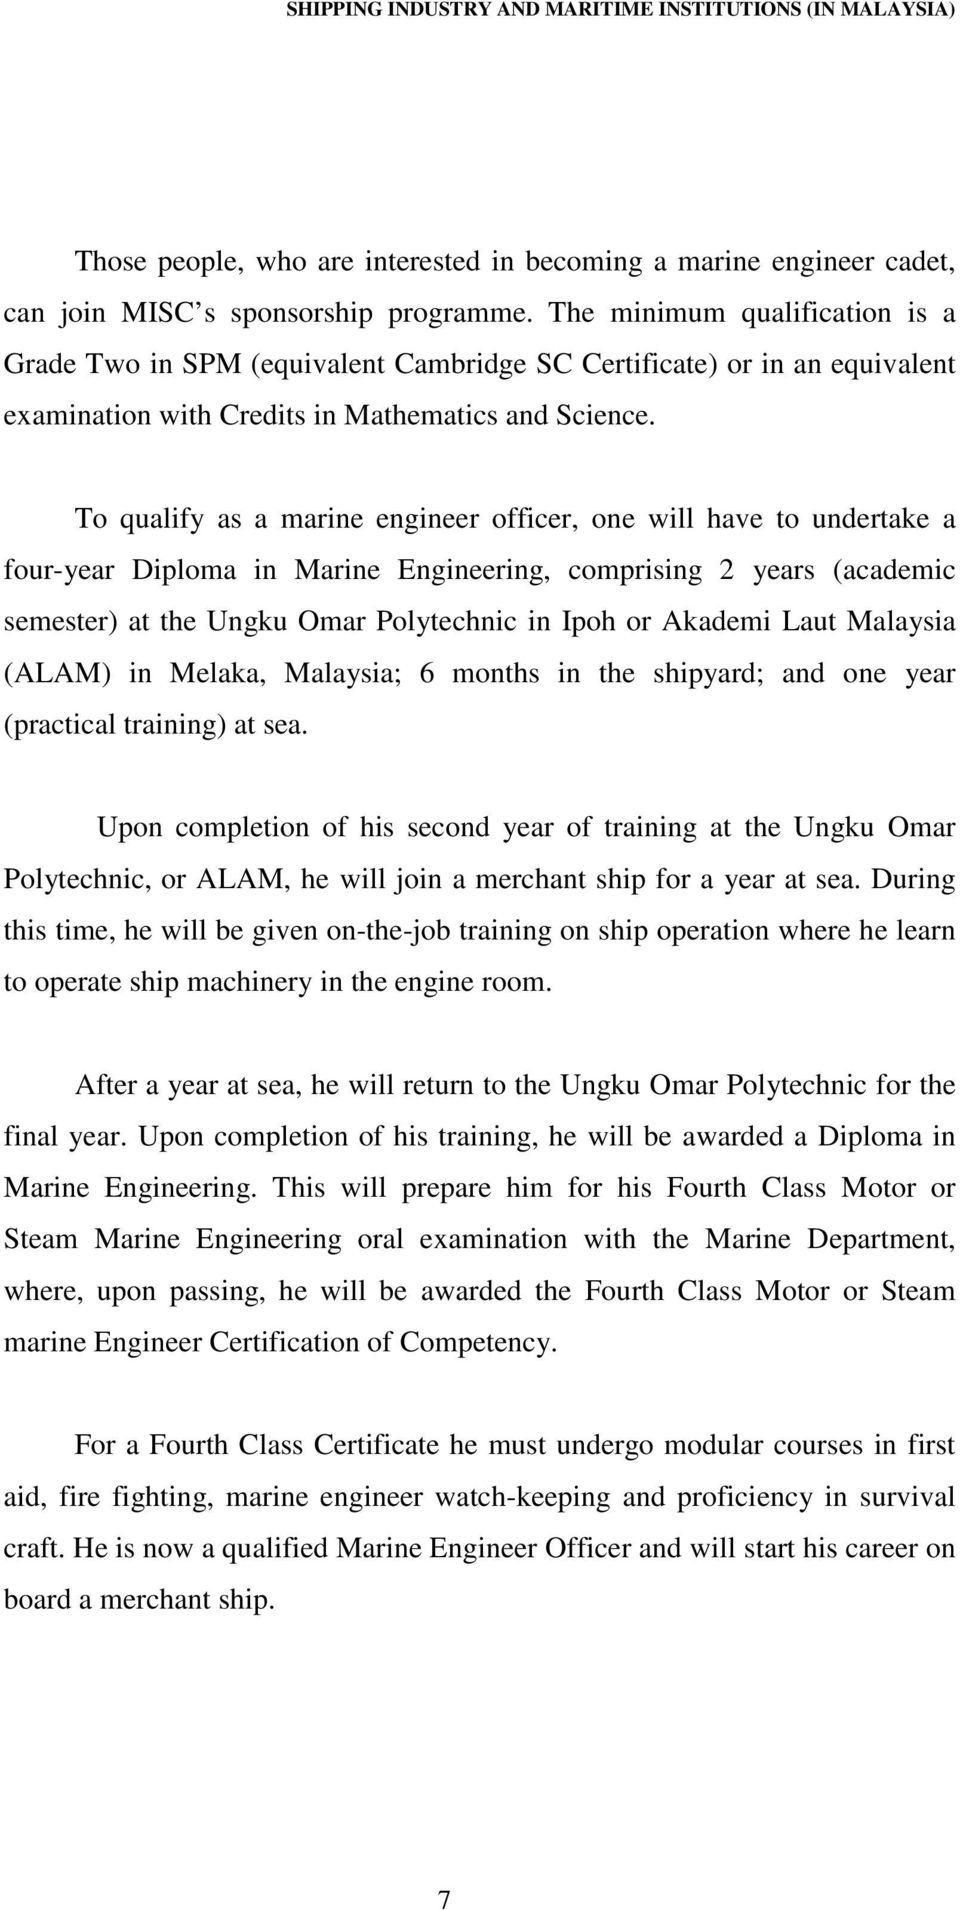 An investigation of the practical maritime training for